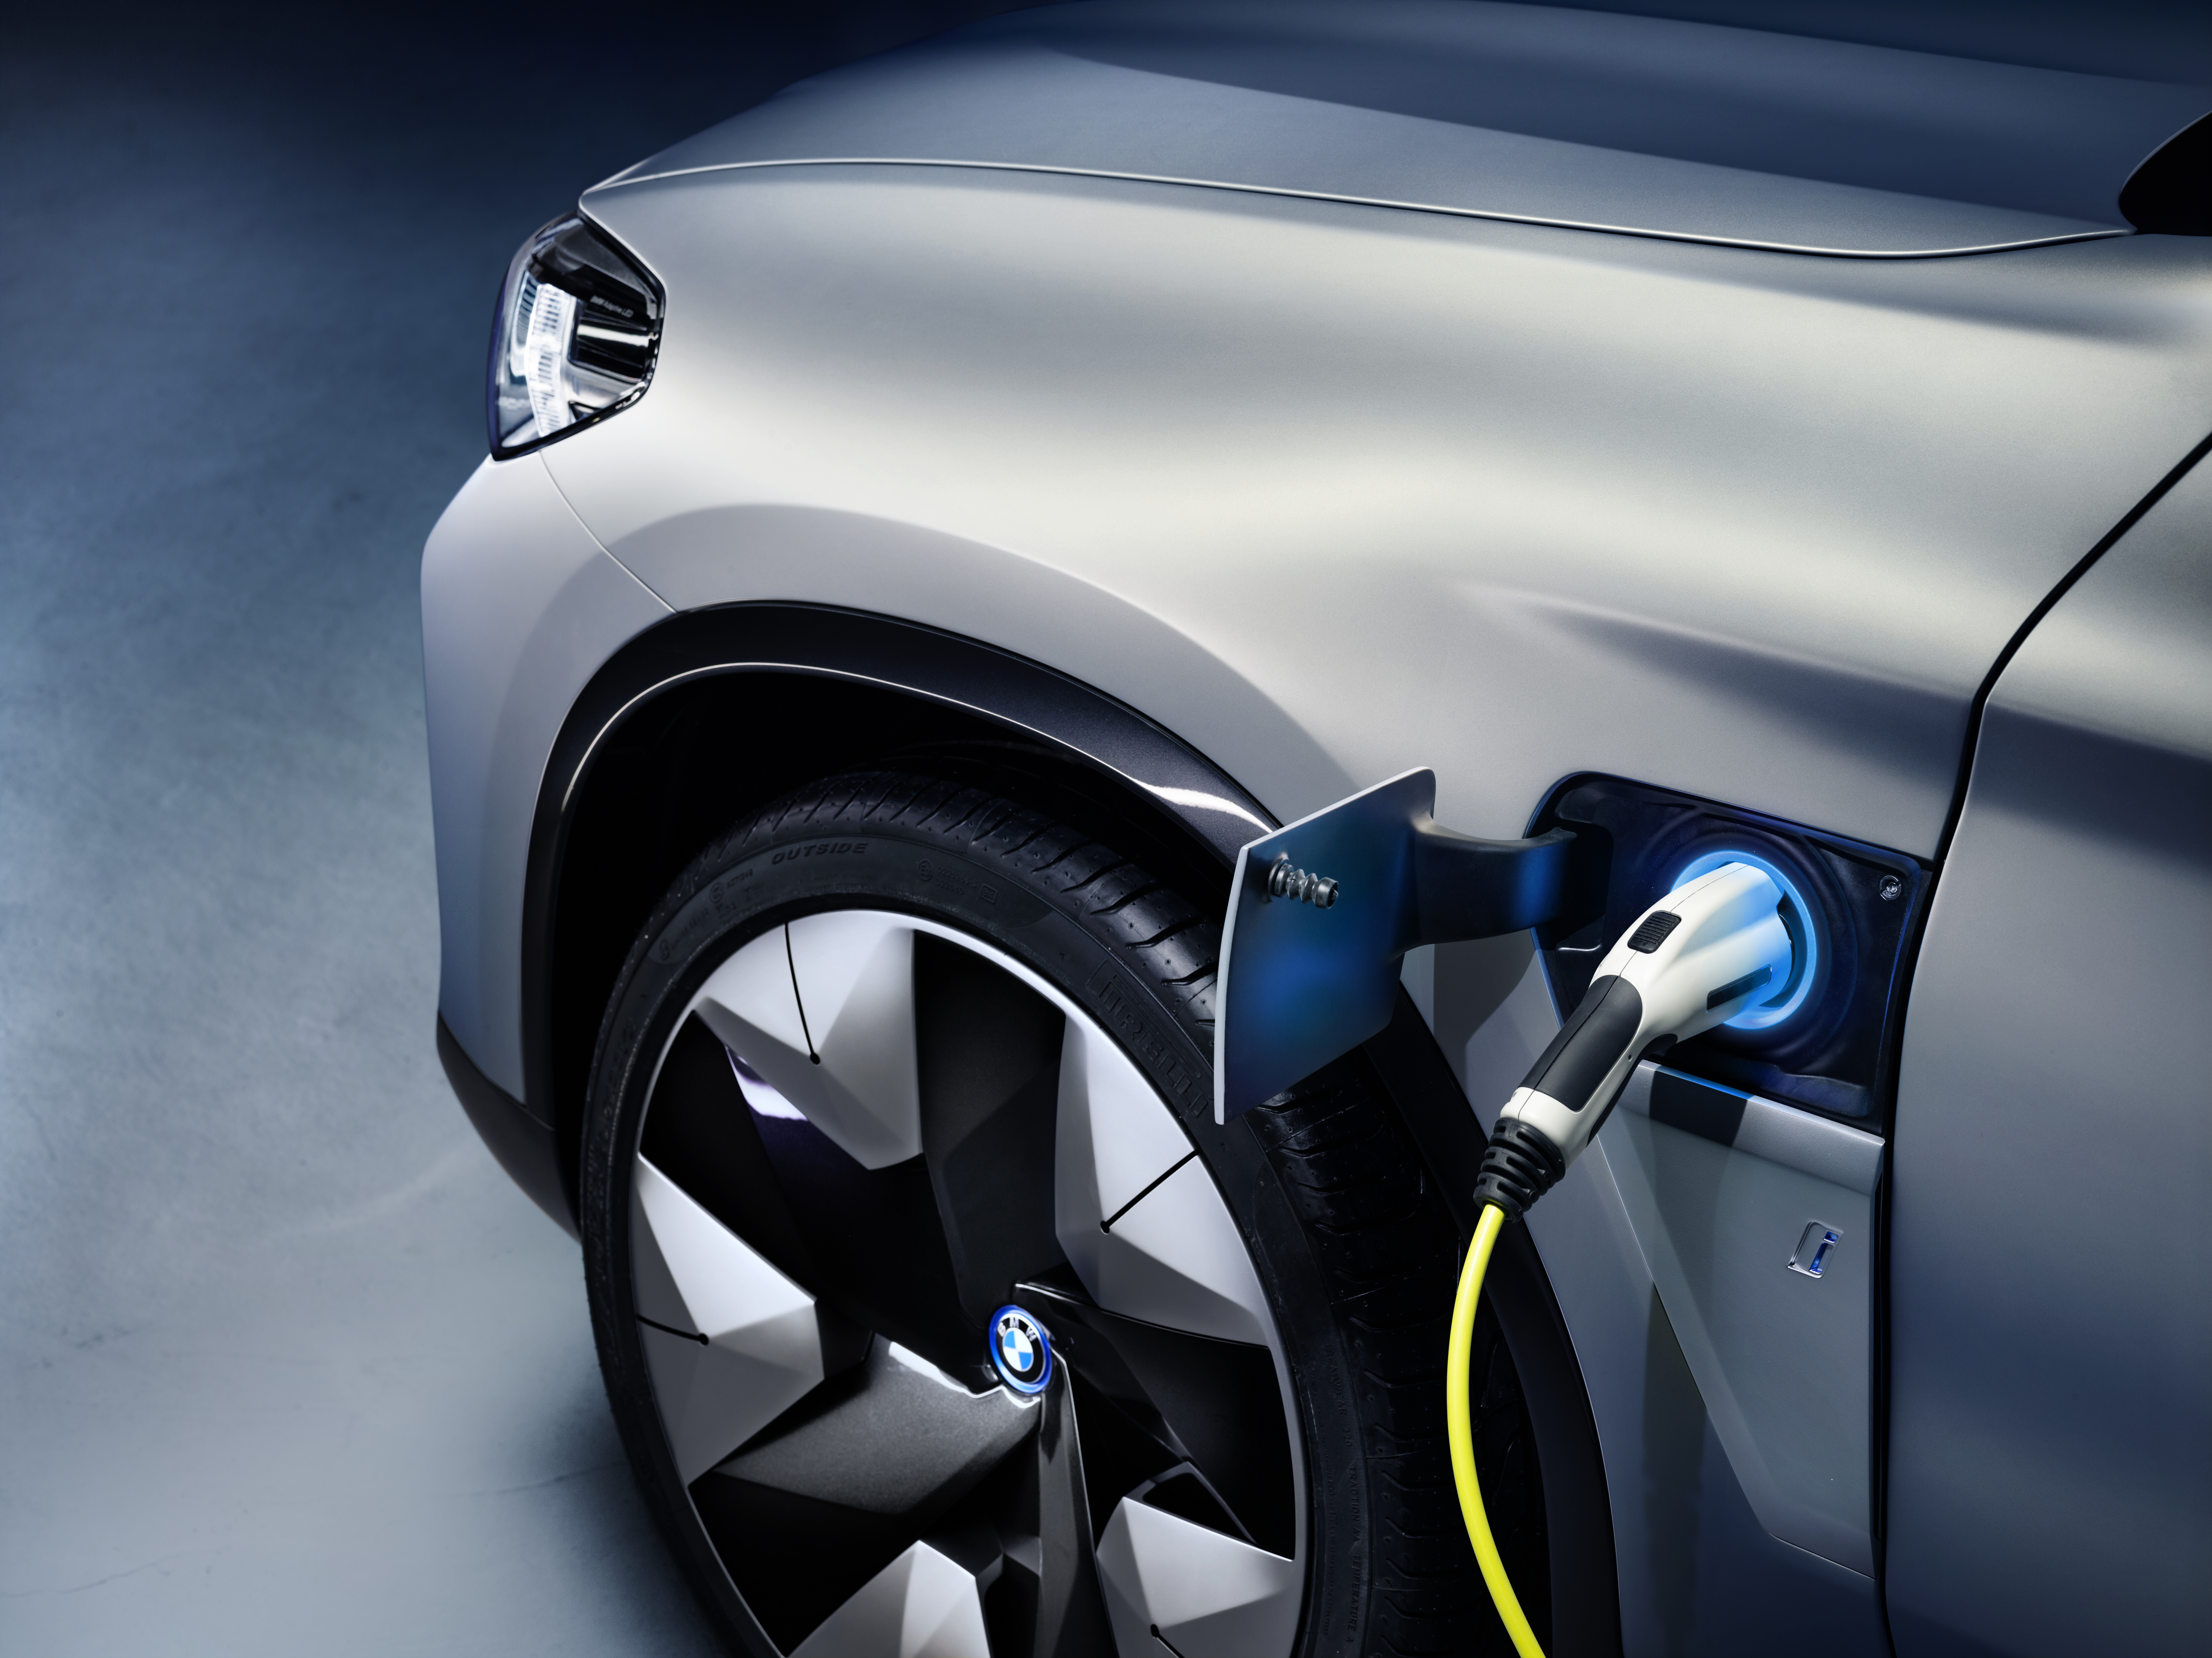 Bmw Starts Taking Orders For Electric Ix3 Suv As German Automakers